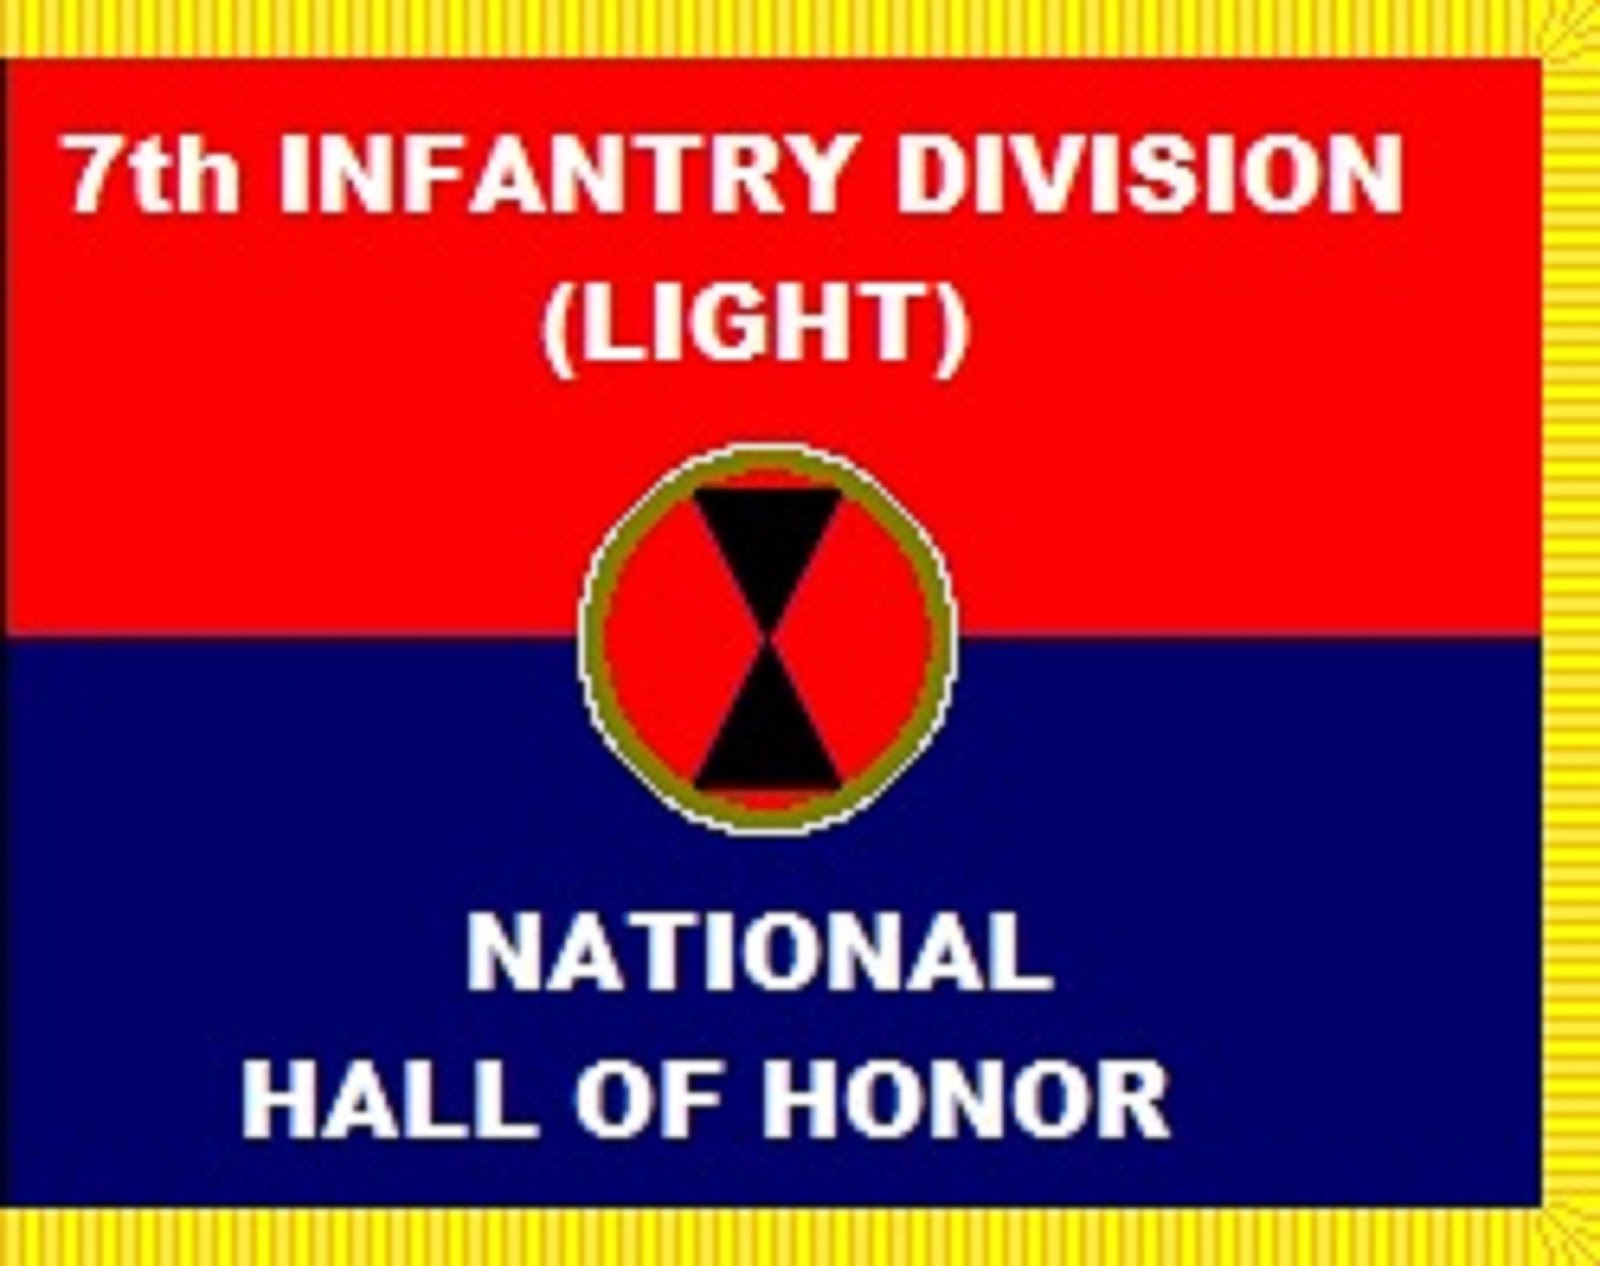 7th INFANTRY DIVISION (LIGHT)  NATIONAL HALL OF HONOR